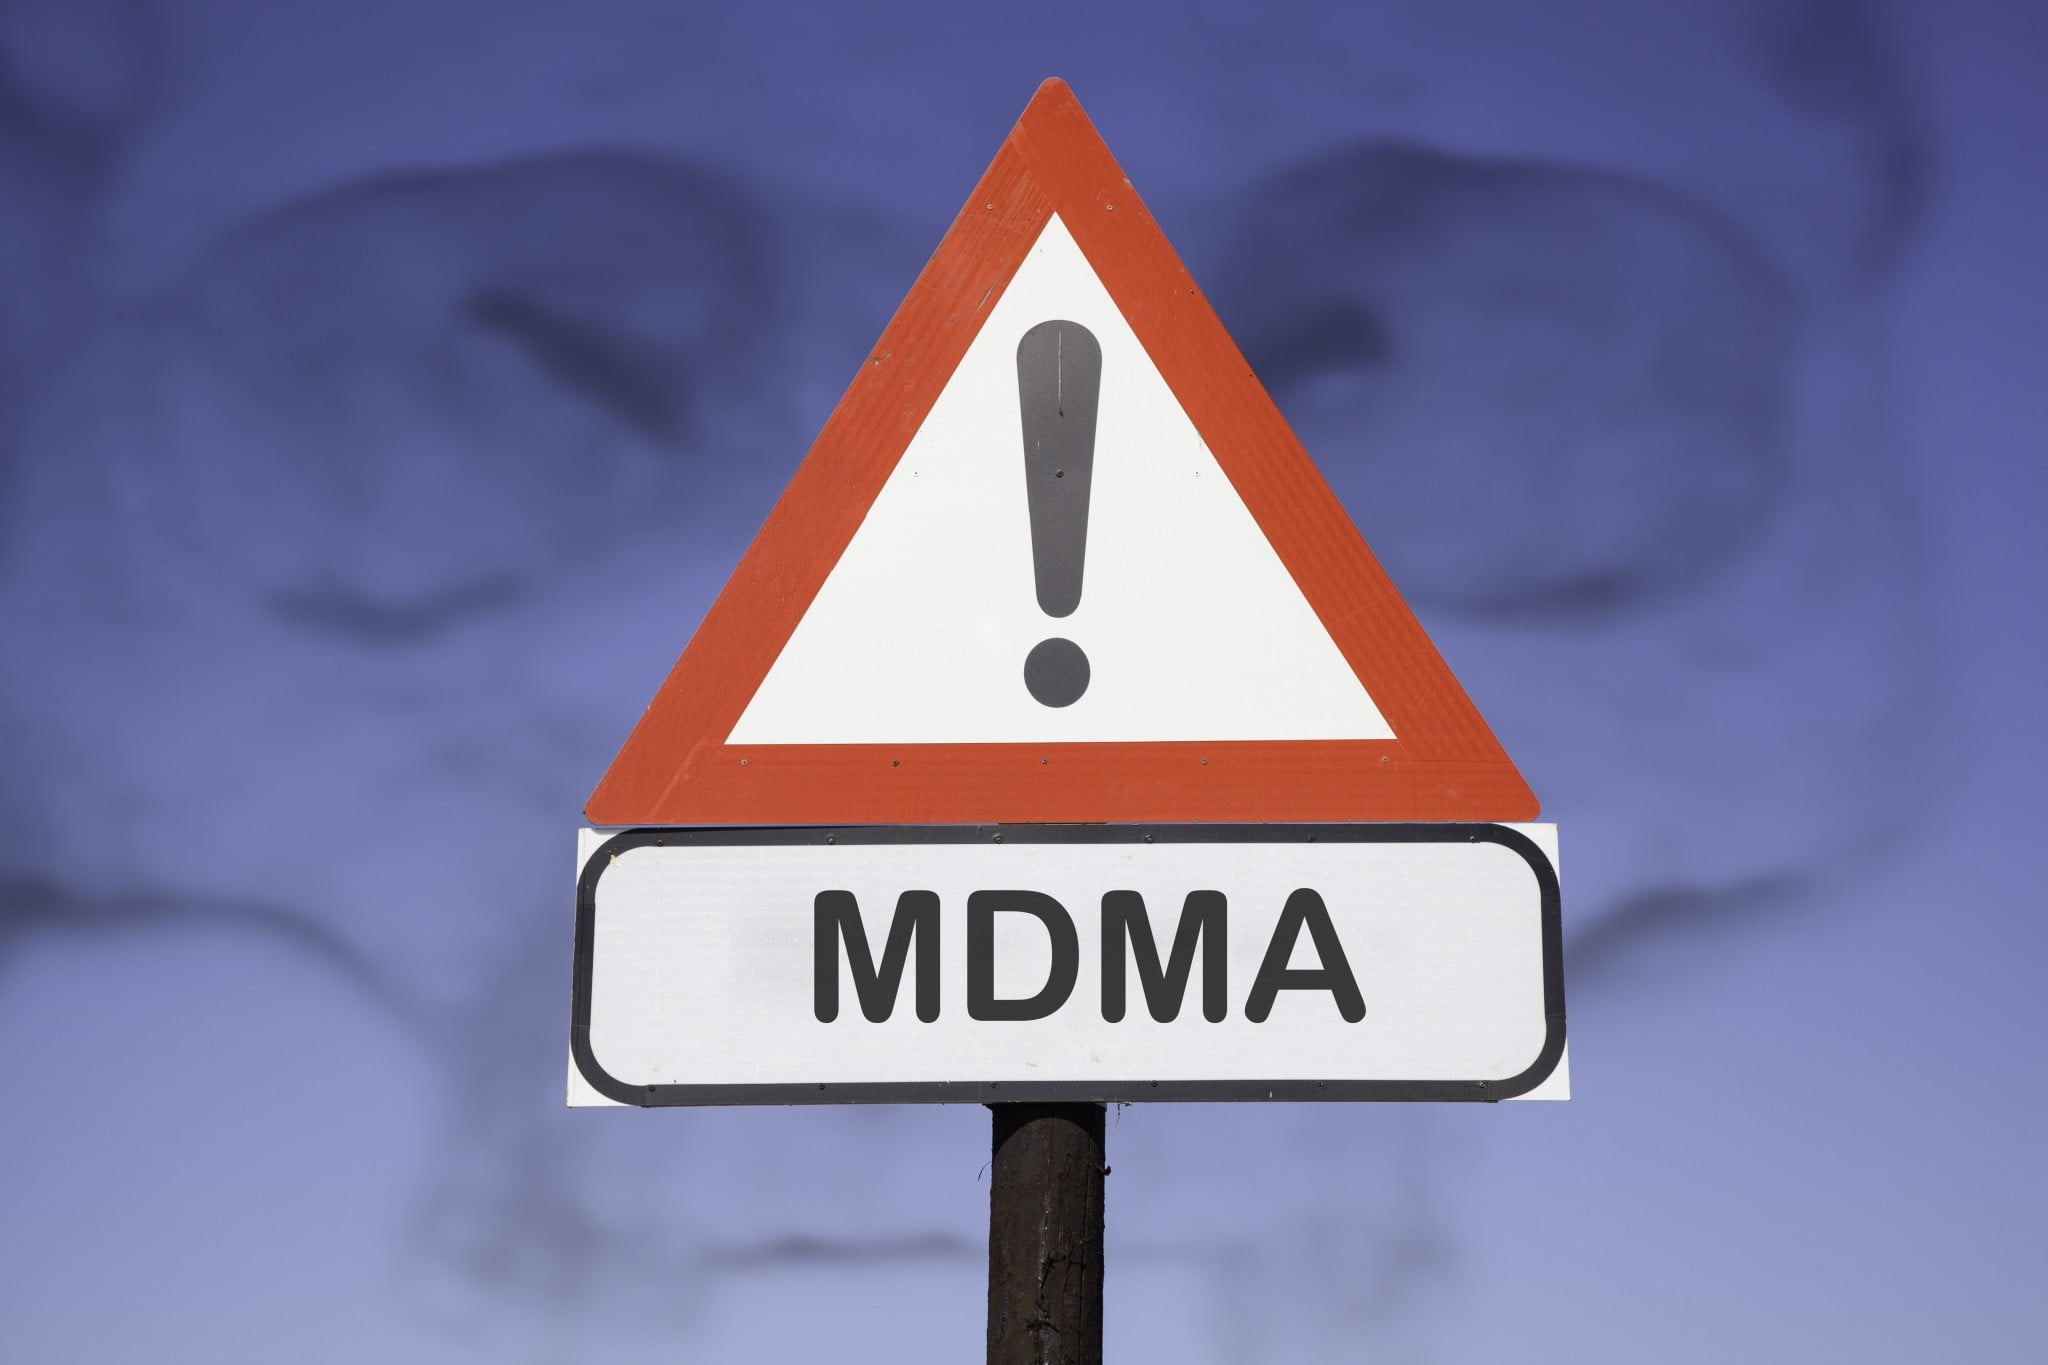 ecstasy or MDMA stop sign